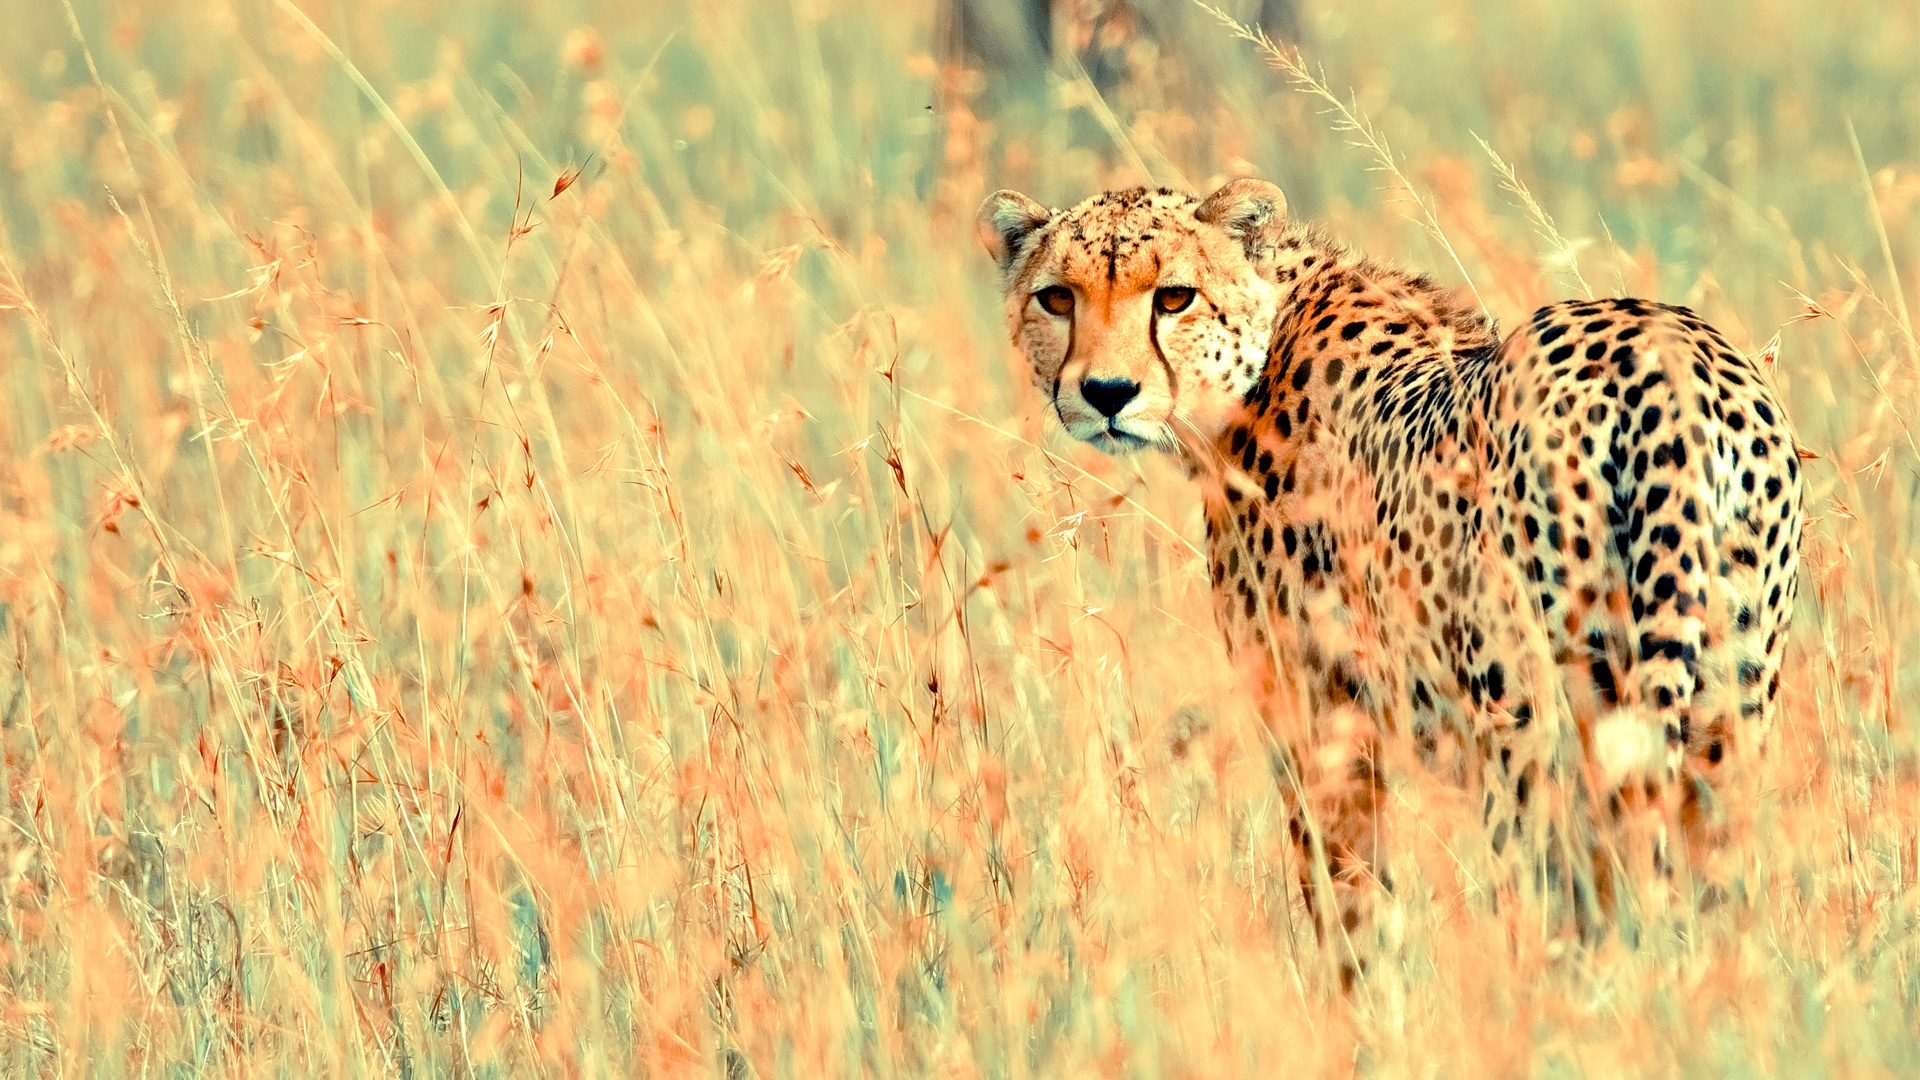 beautiful cheetah animal wallpaper Desktop Backgrounds for HD 1920x1080